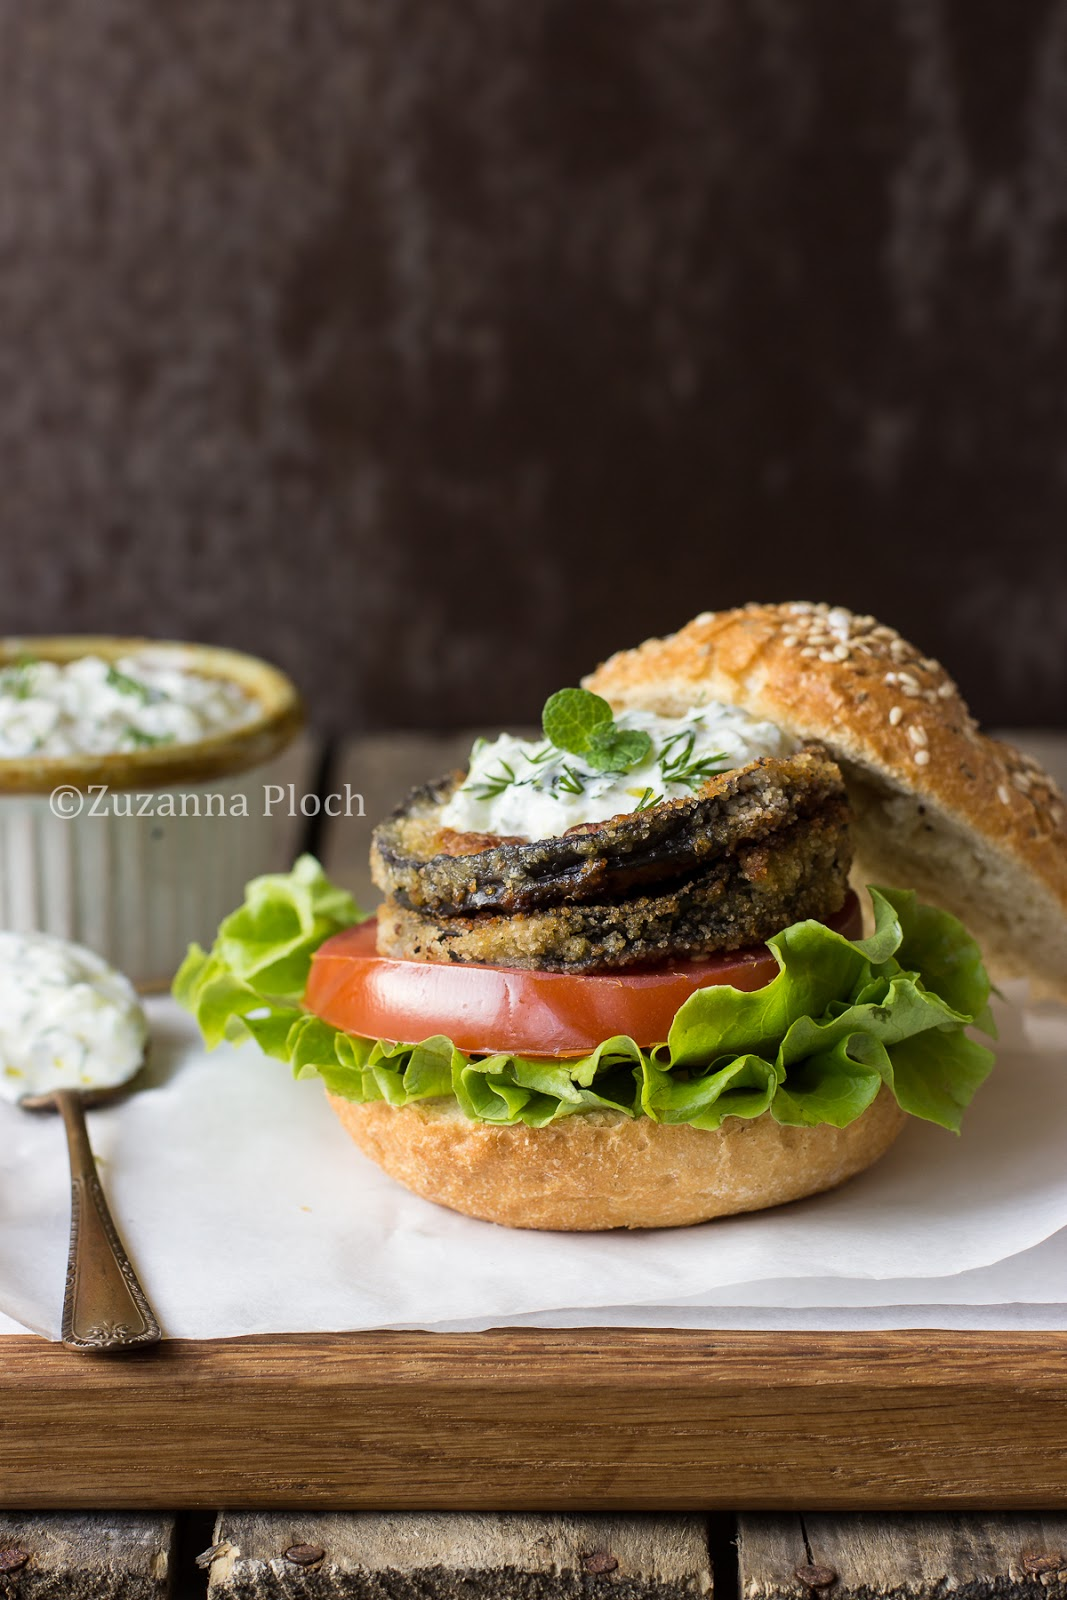 Aubergine burger with tzatziki - Food photography by Zuzanna Ploch, fotografia kulinarna